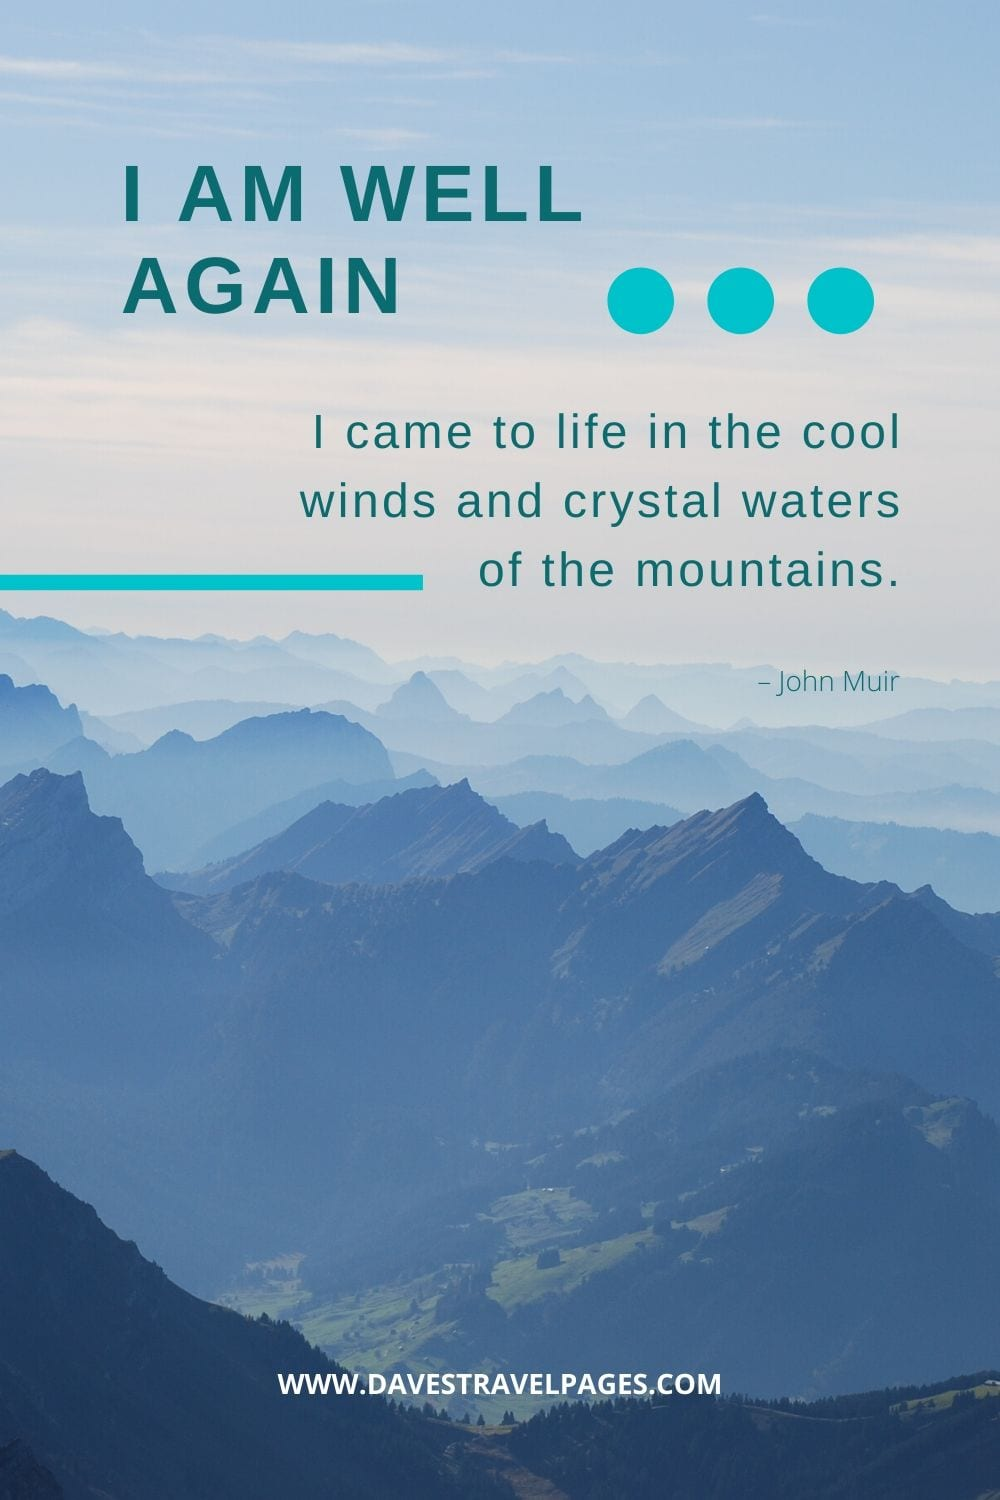 """Outdoor Quotes: """"I am well again, I came to life in the cool winds and crystal waters of the mountains."""" – John Muir"""